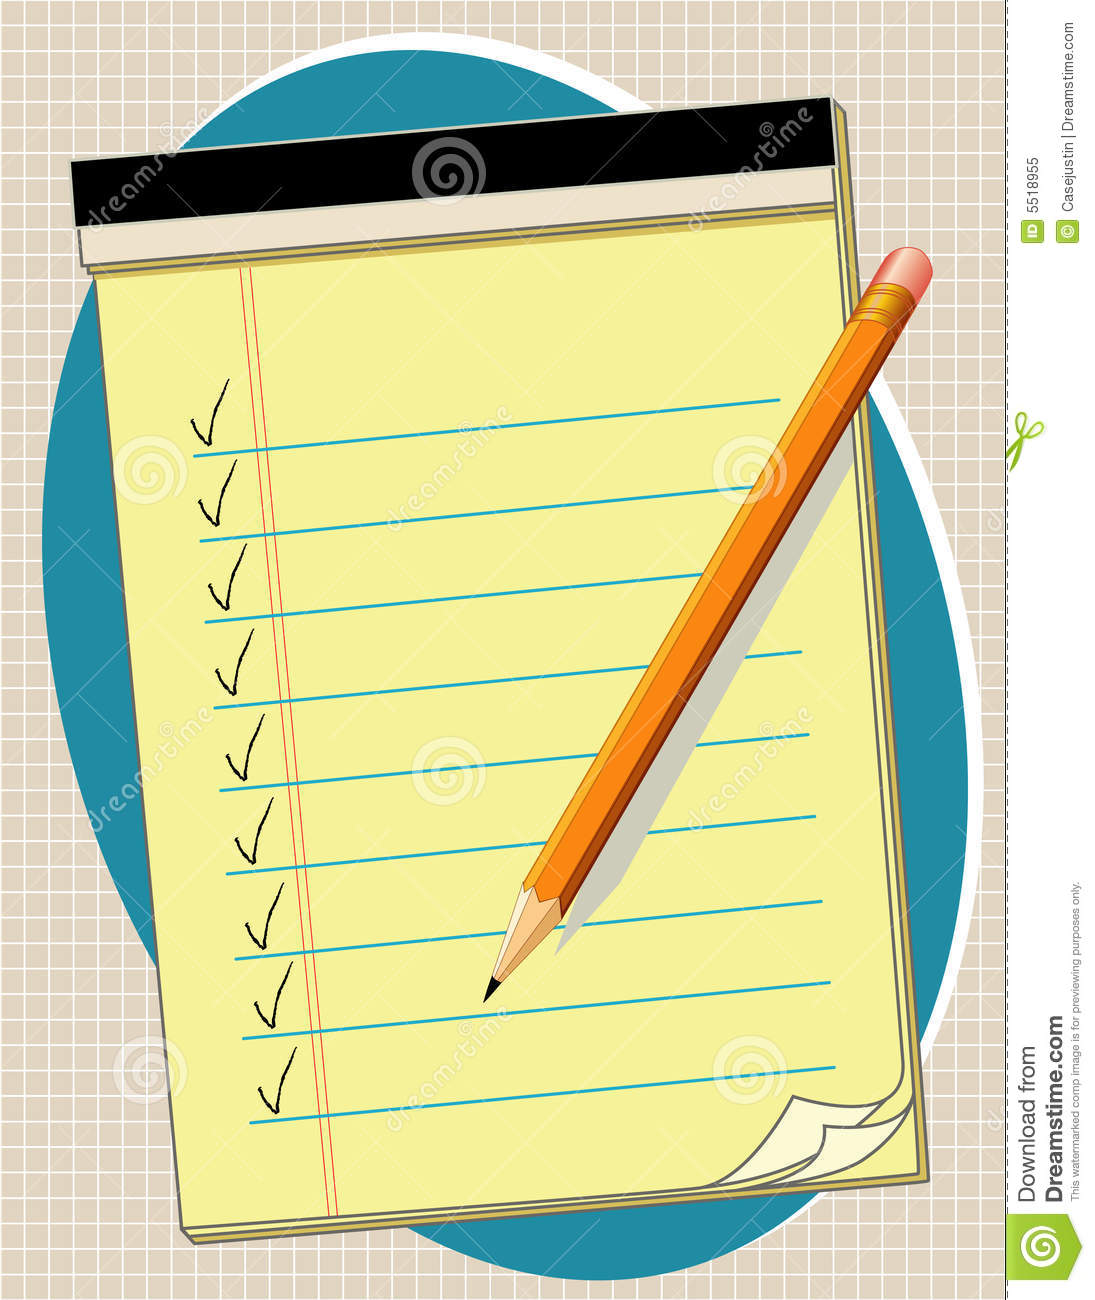 Checklist pad pencil yellow